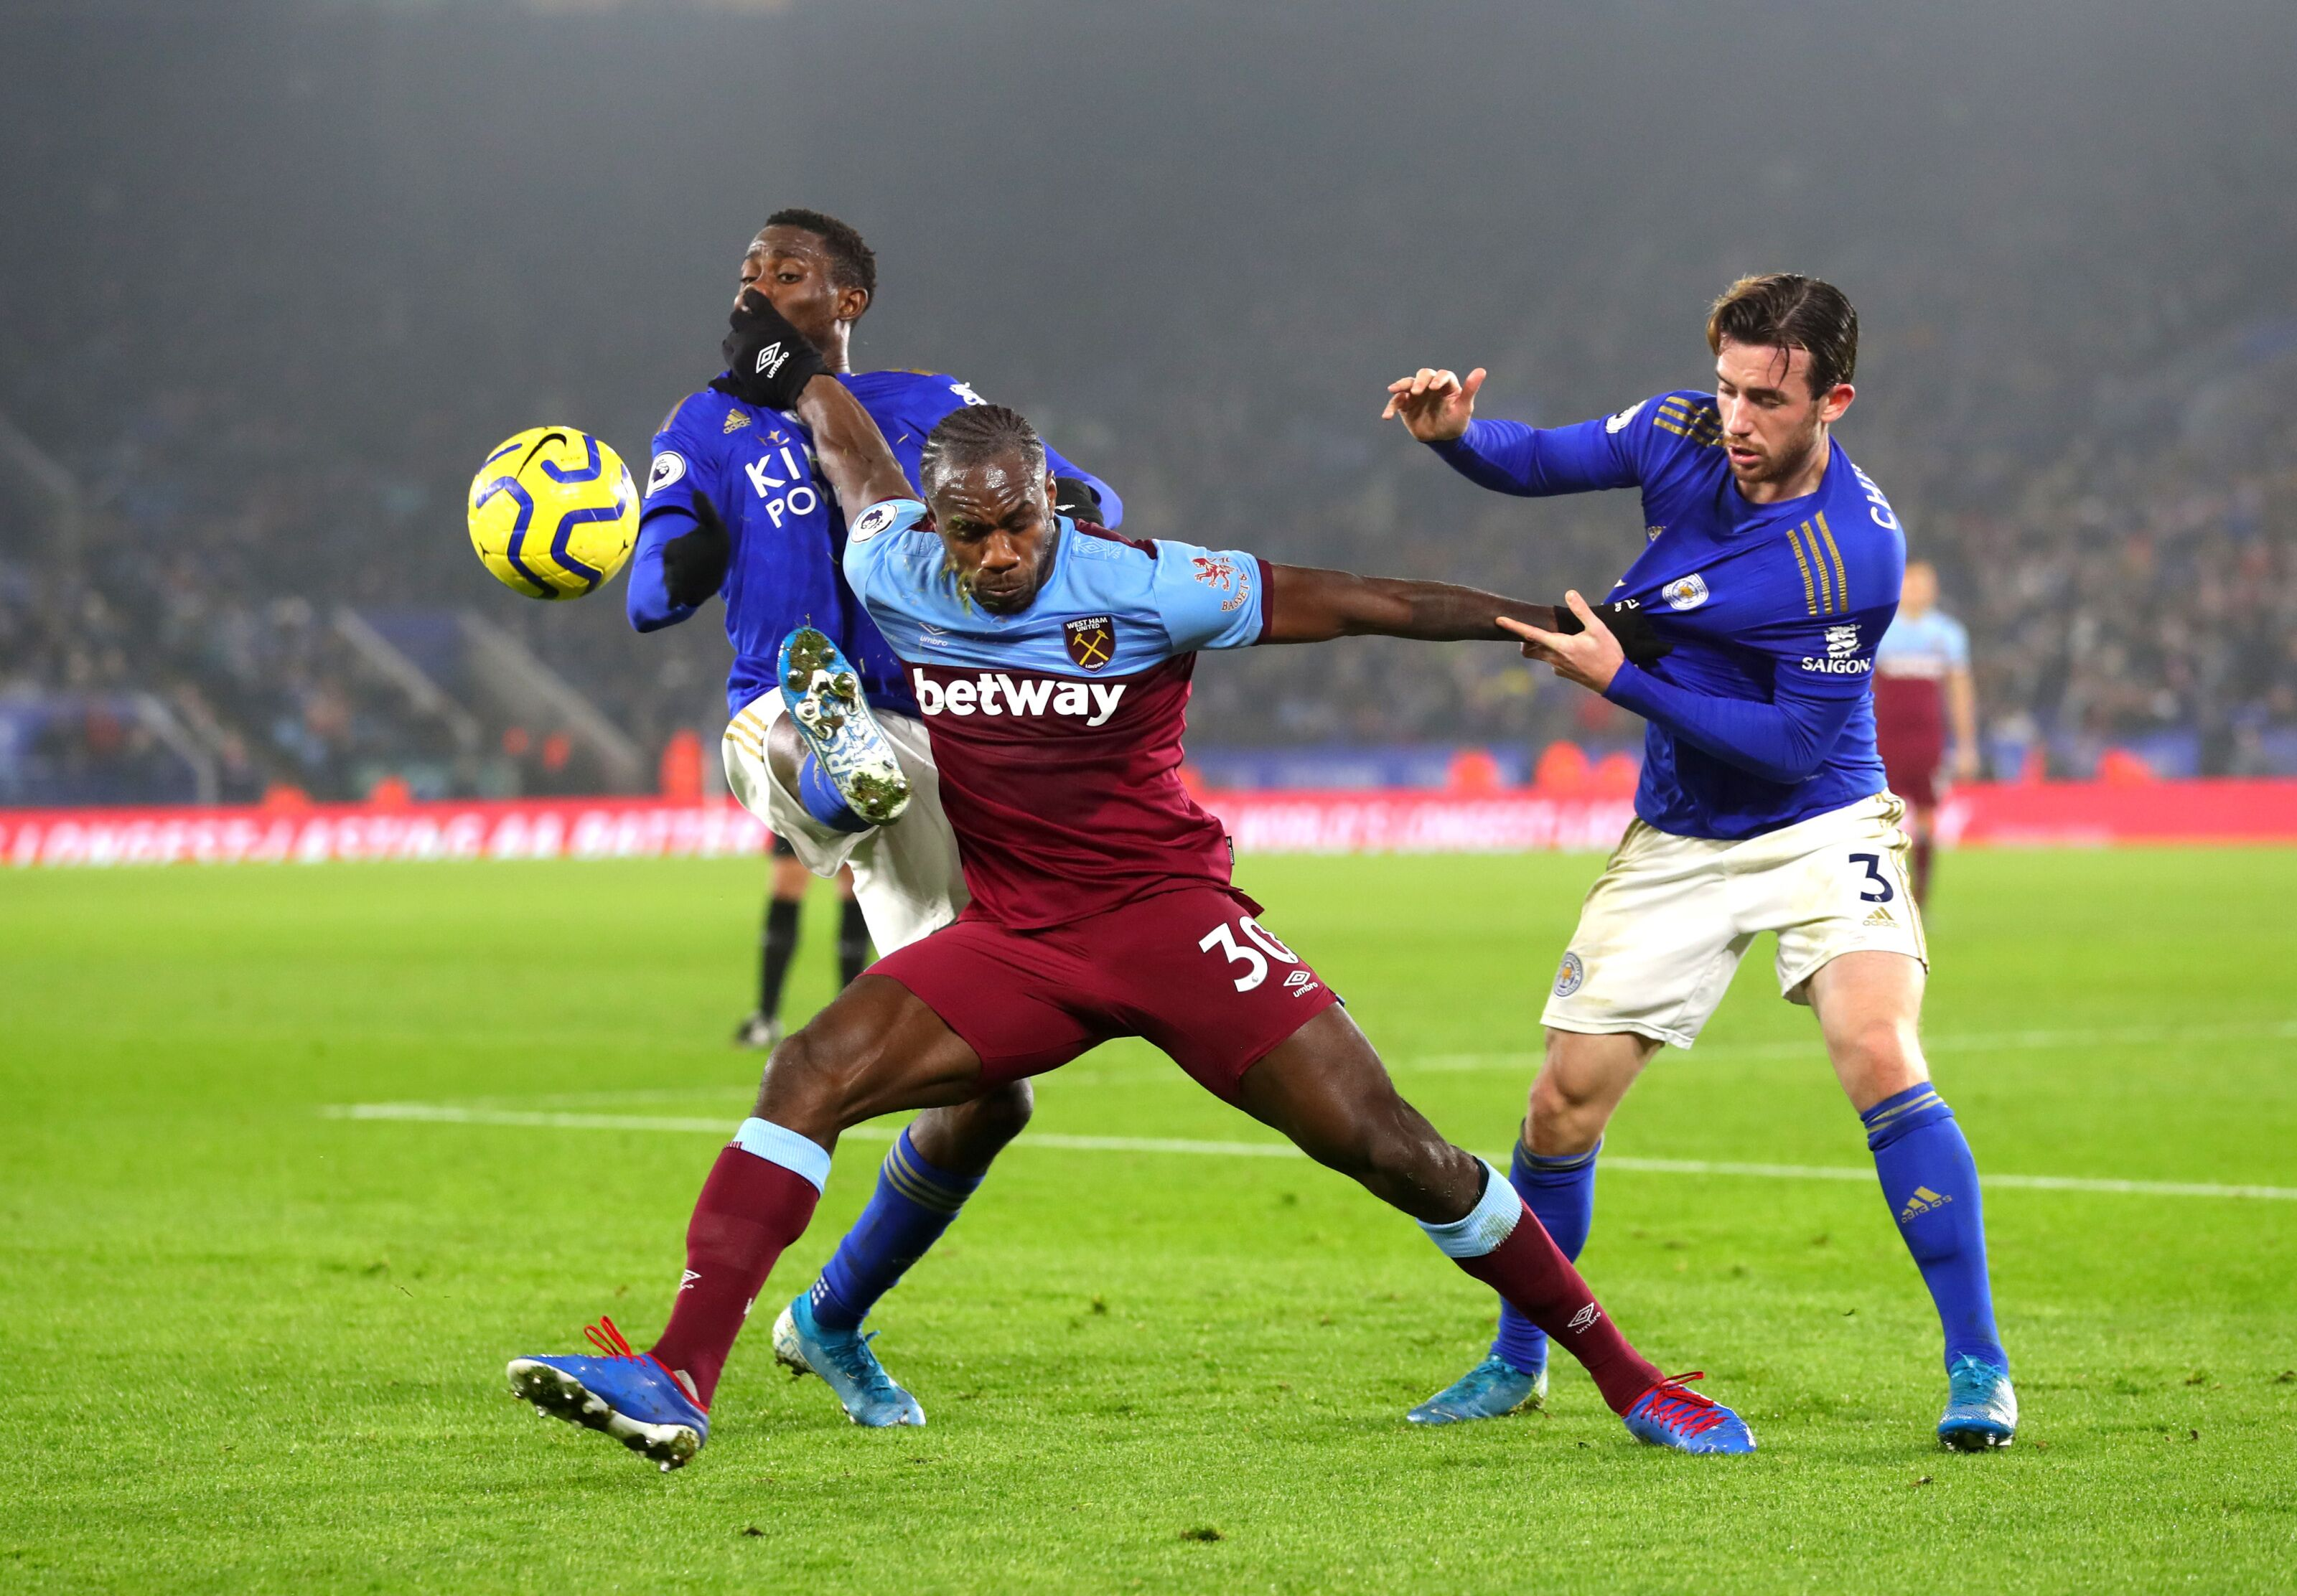 MATCH REVIEW: Leicester win over lifeless, careless West Ham